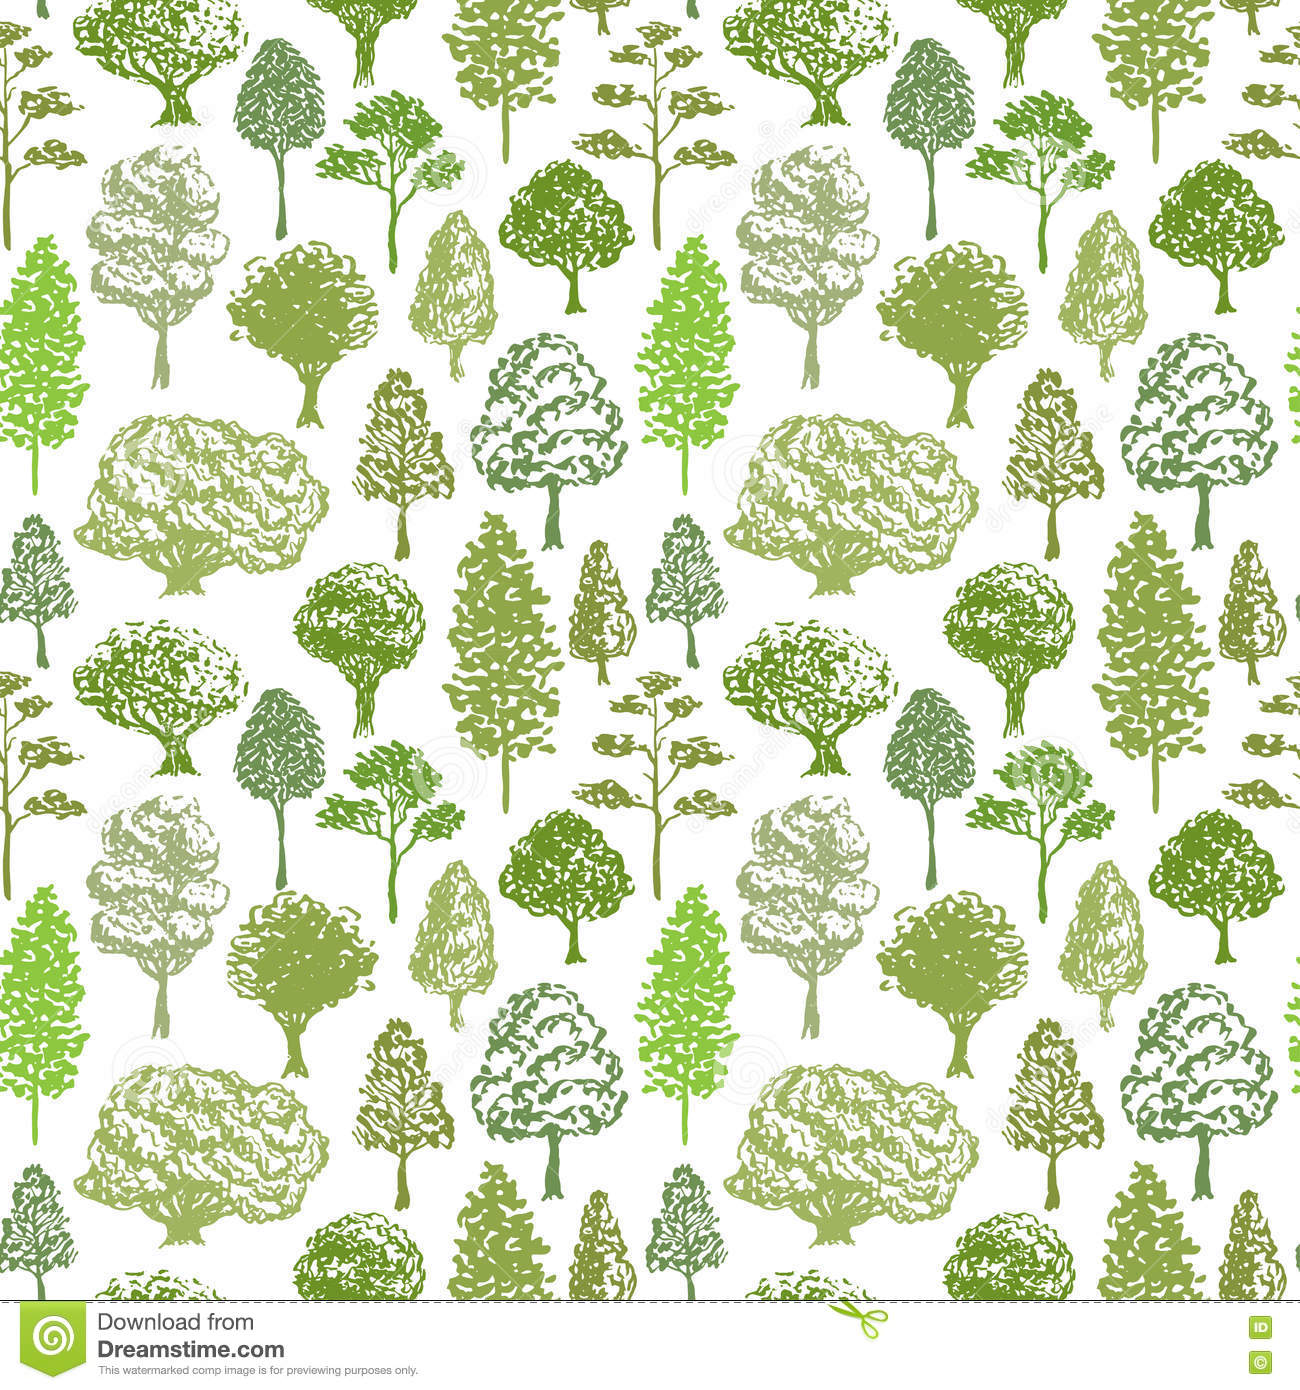 Trees Vector Pattern. Sketch Seamless Green Tree Pattern